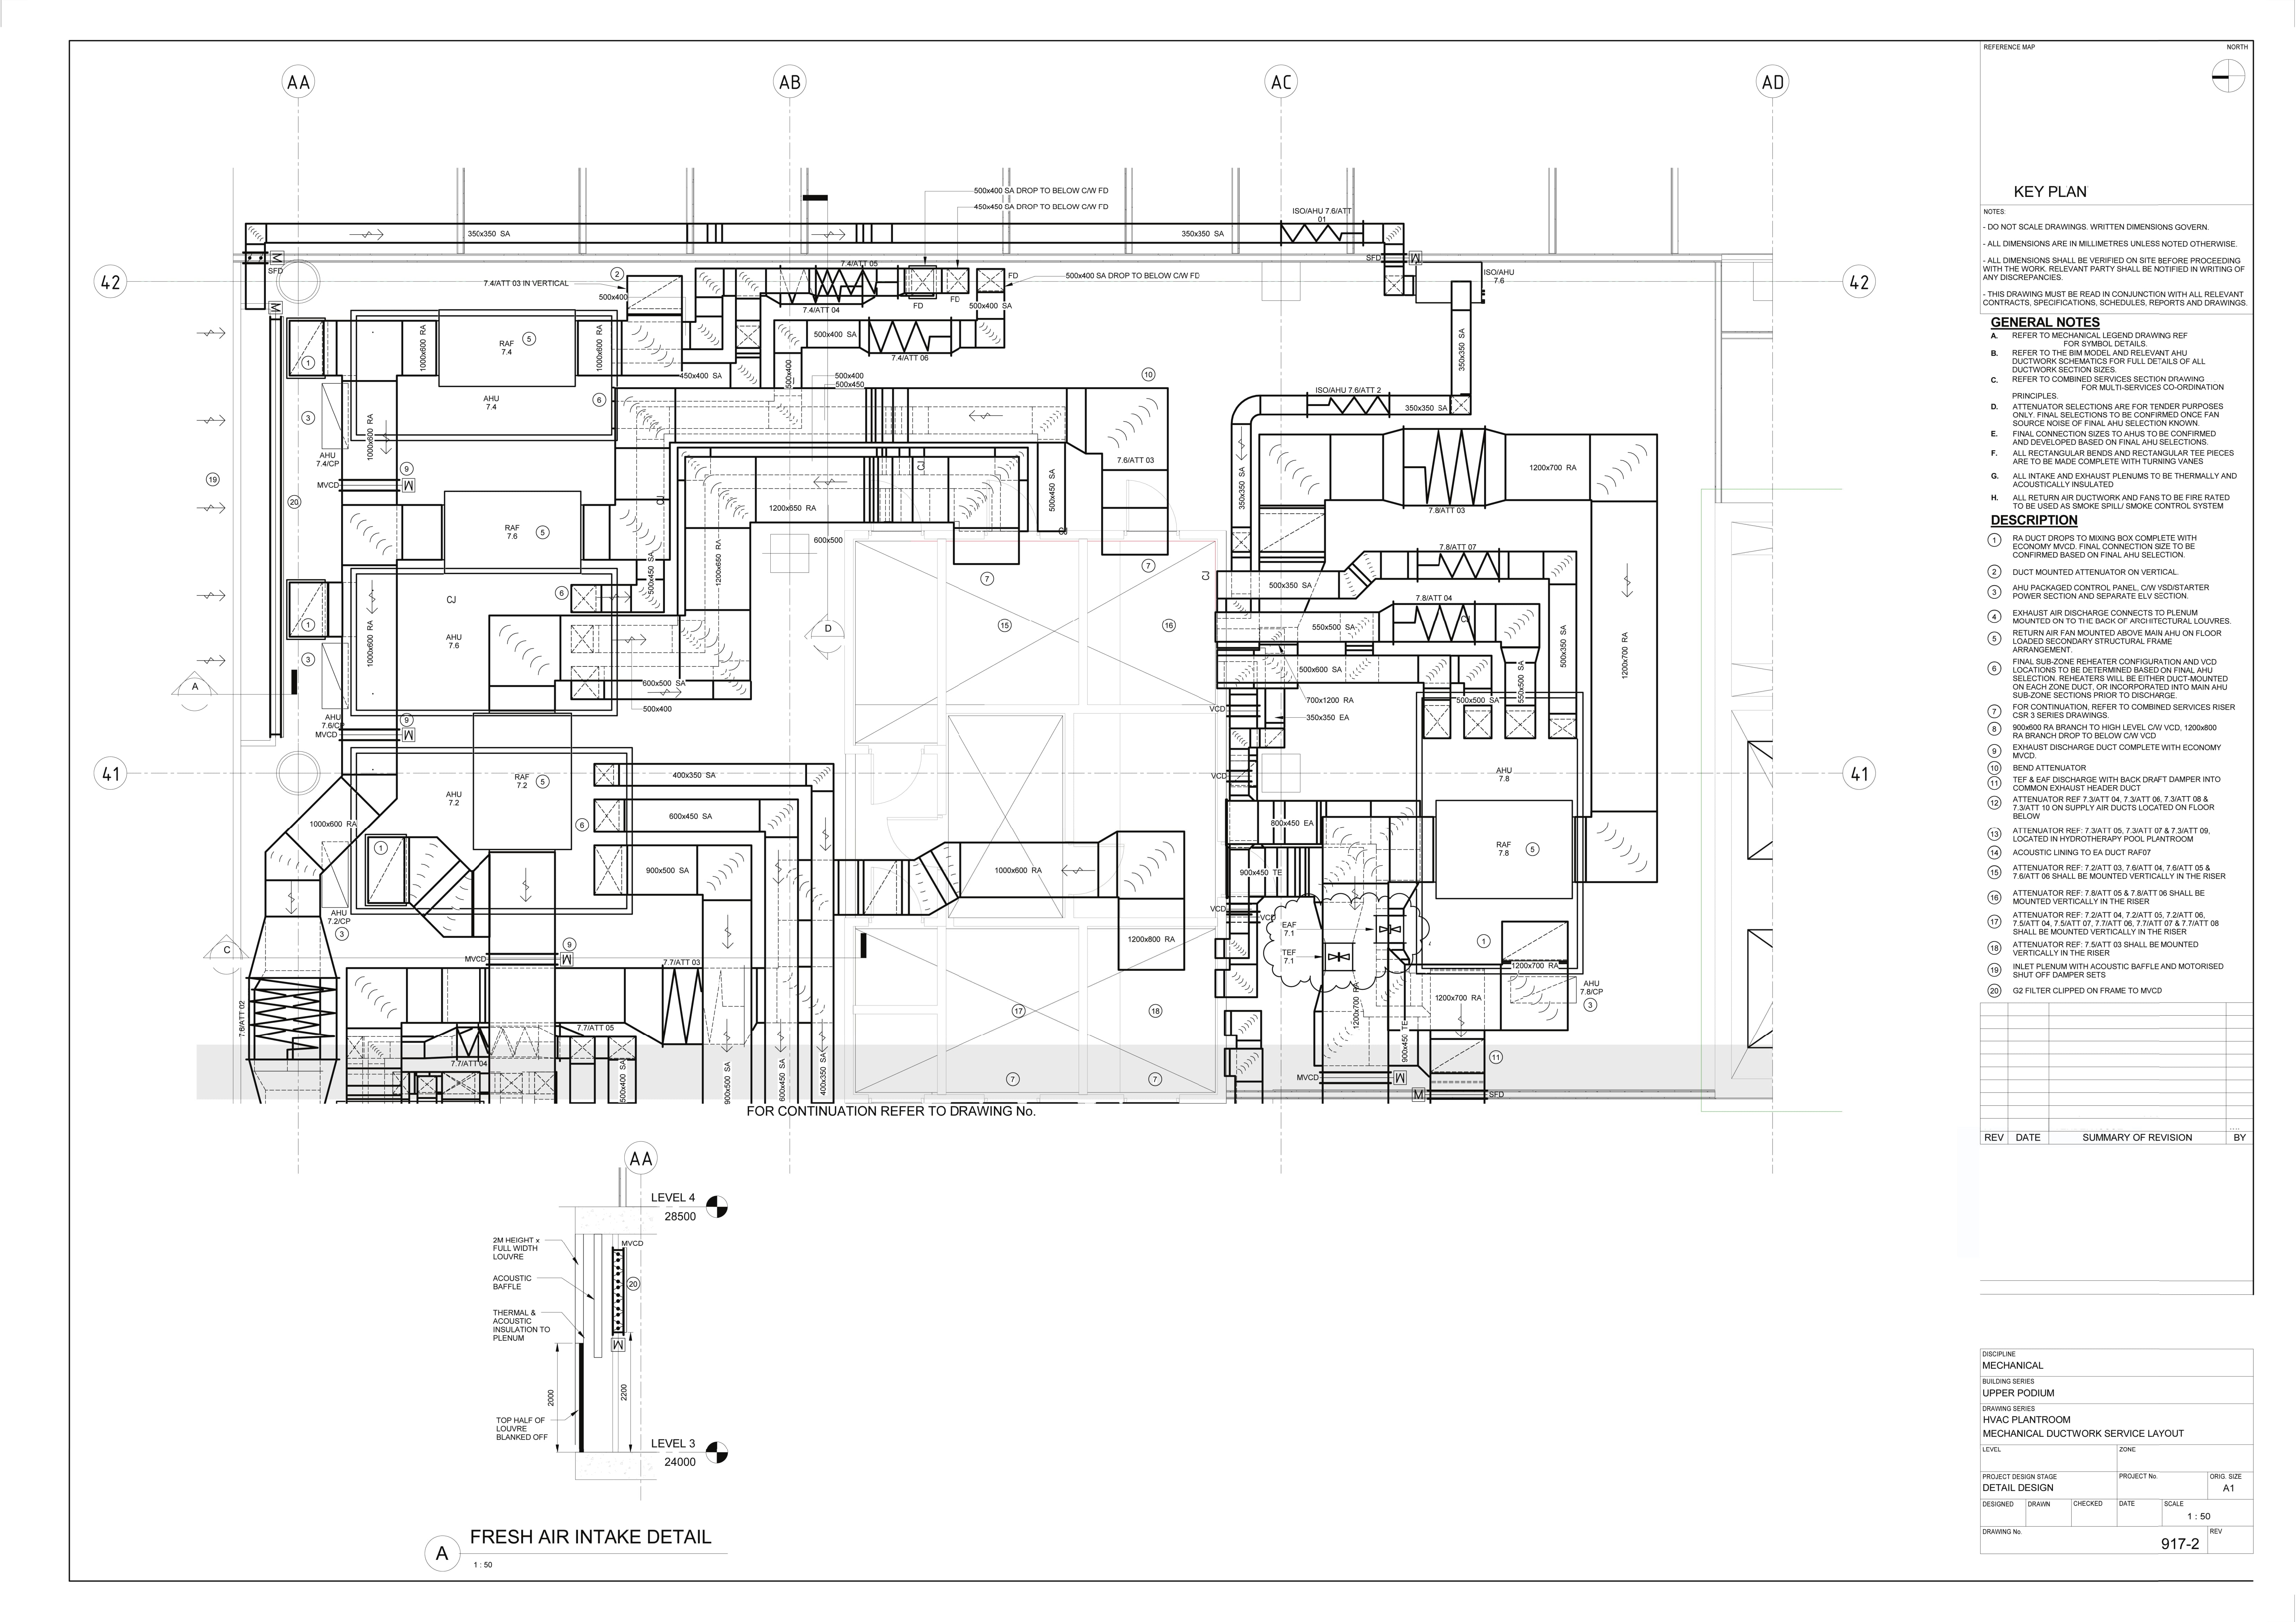 Mechanical Ductwork Service Layout 2